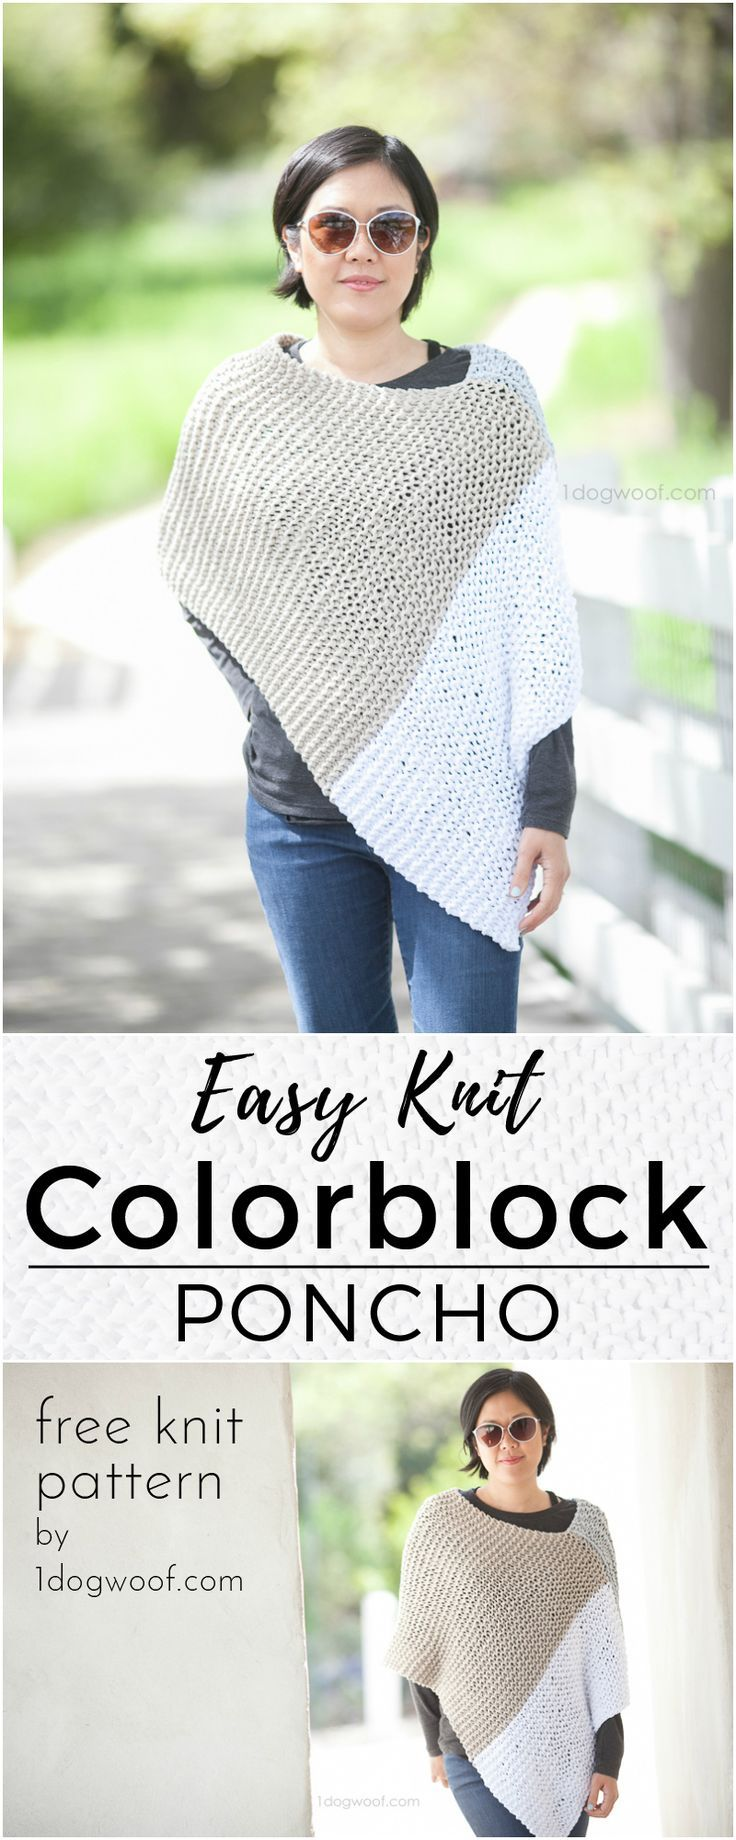 Easy Knit Catalunya Colorblock Poncho | Knit patterns, Ponchos and ...